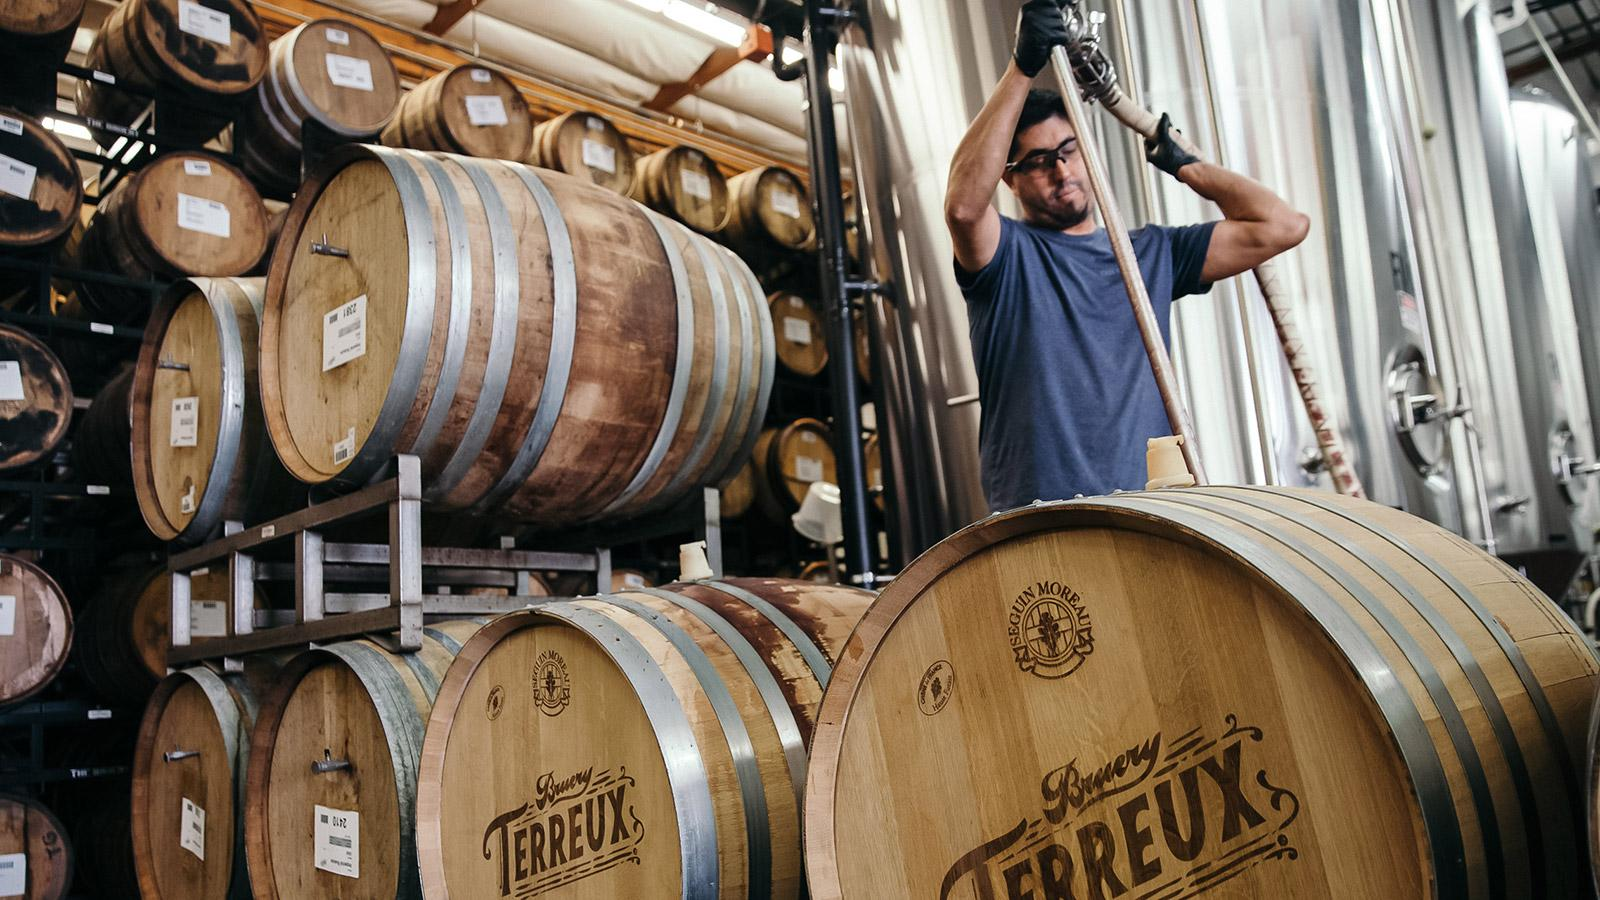 The team at Bruery Terreux is intent on having the wine grape's character expressed in their hybrids.